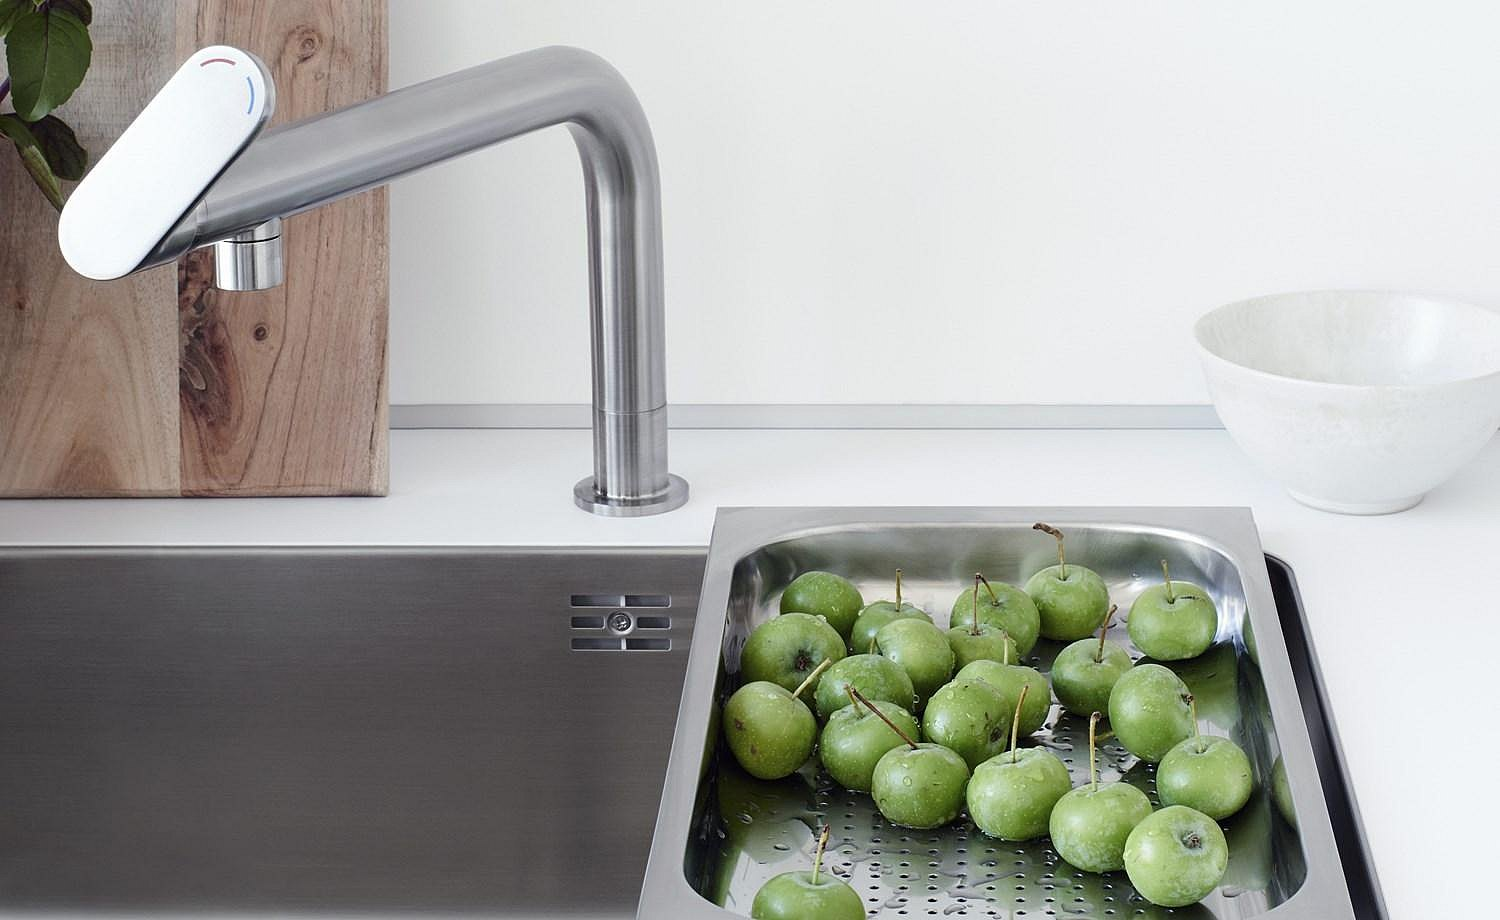 The swiveling and ergonomic faucet integrates perfectly into b1 due to its simplicity